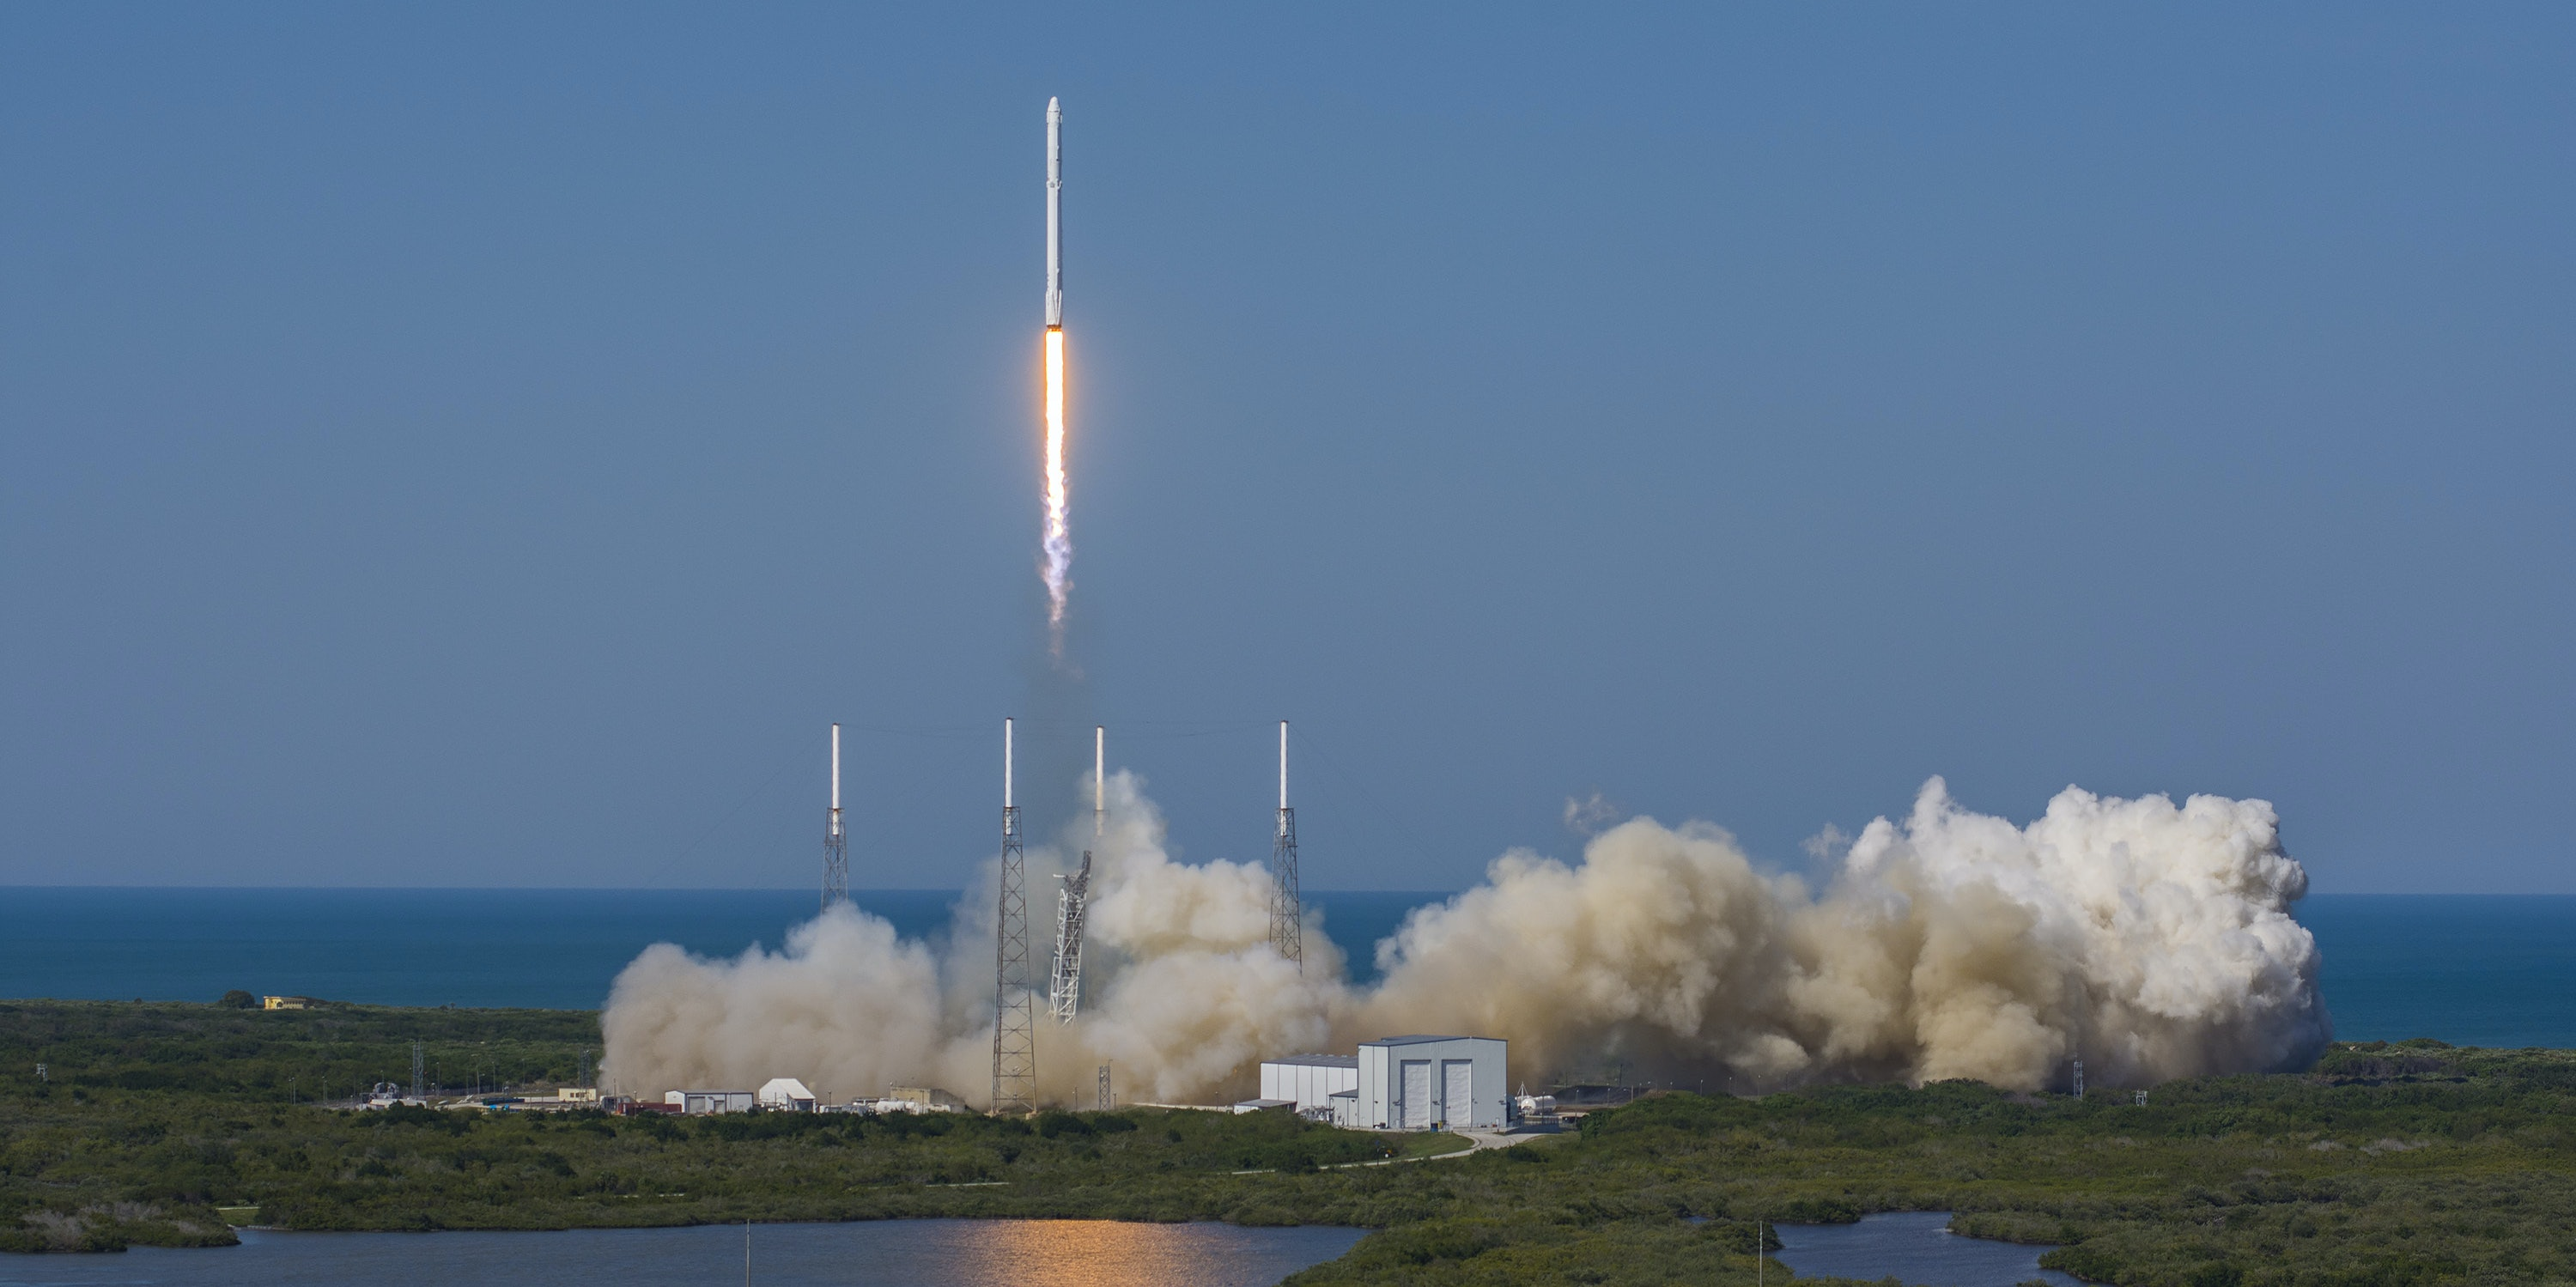 SpaceX frequently launches rockets from Cape Canaveral, Florida